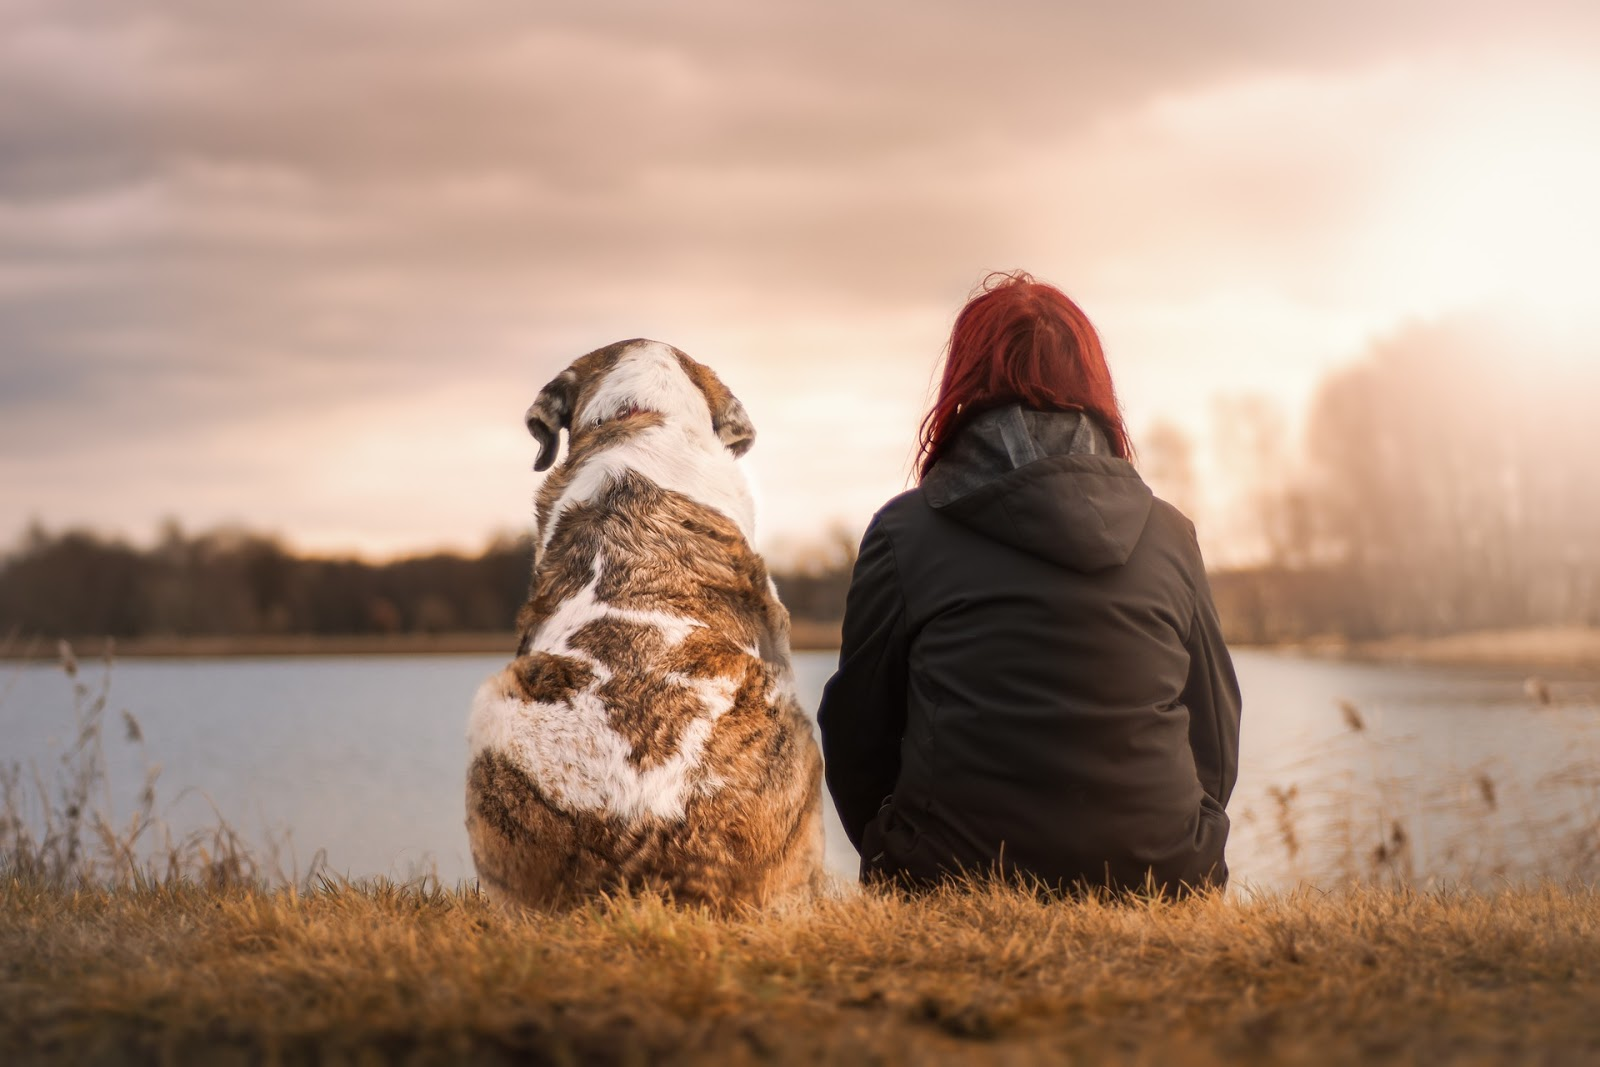 Dogs Can Recognize a Bad Person